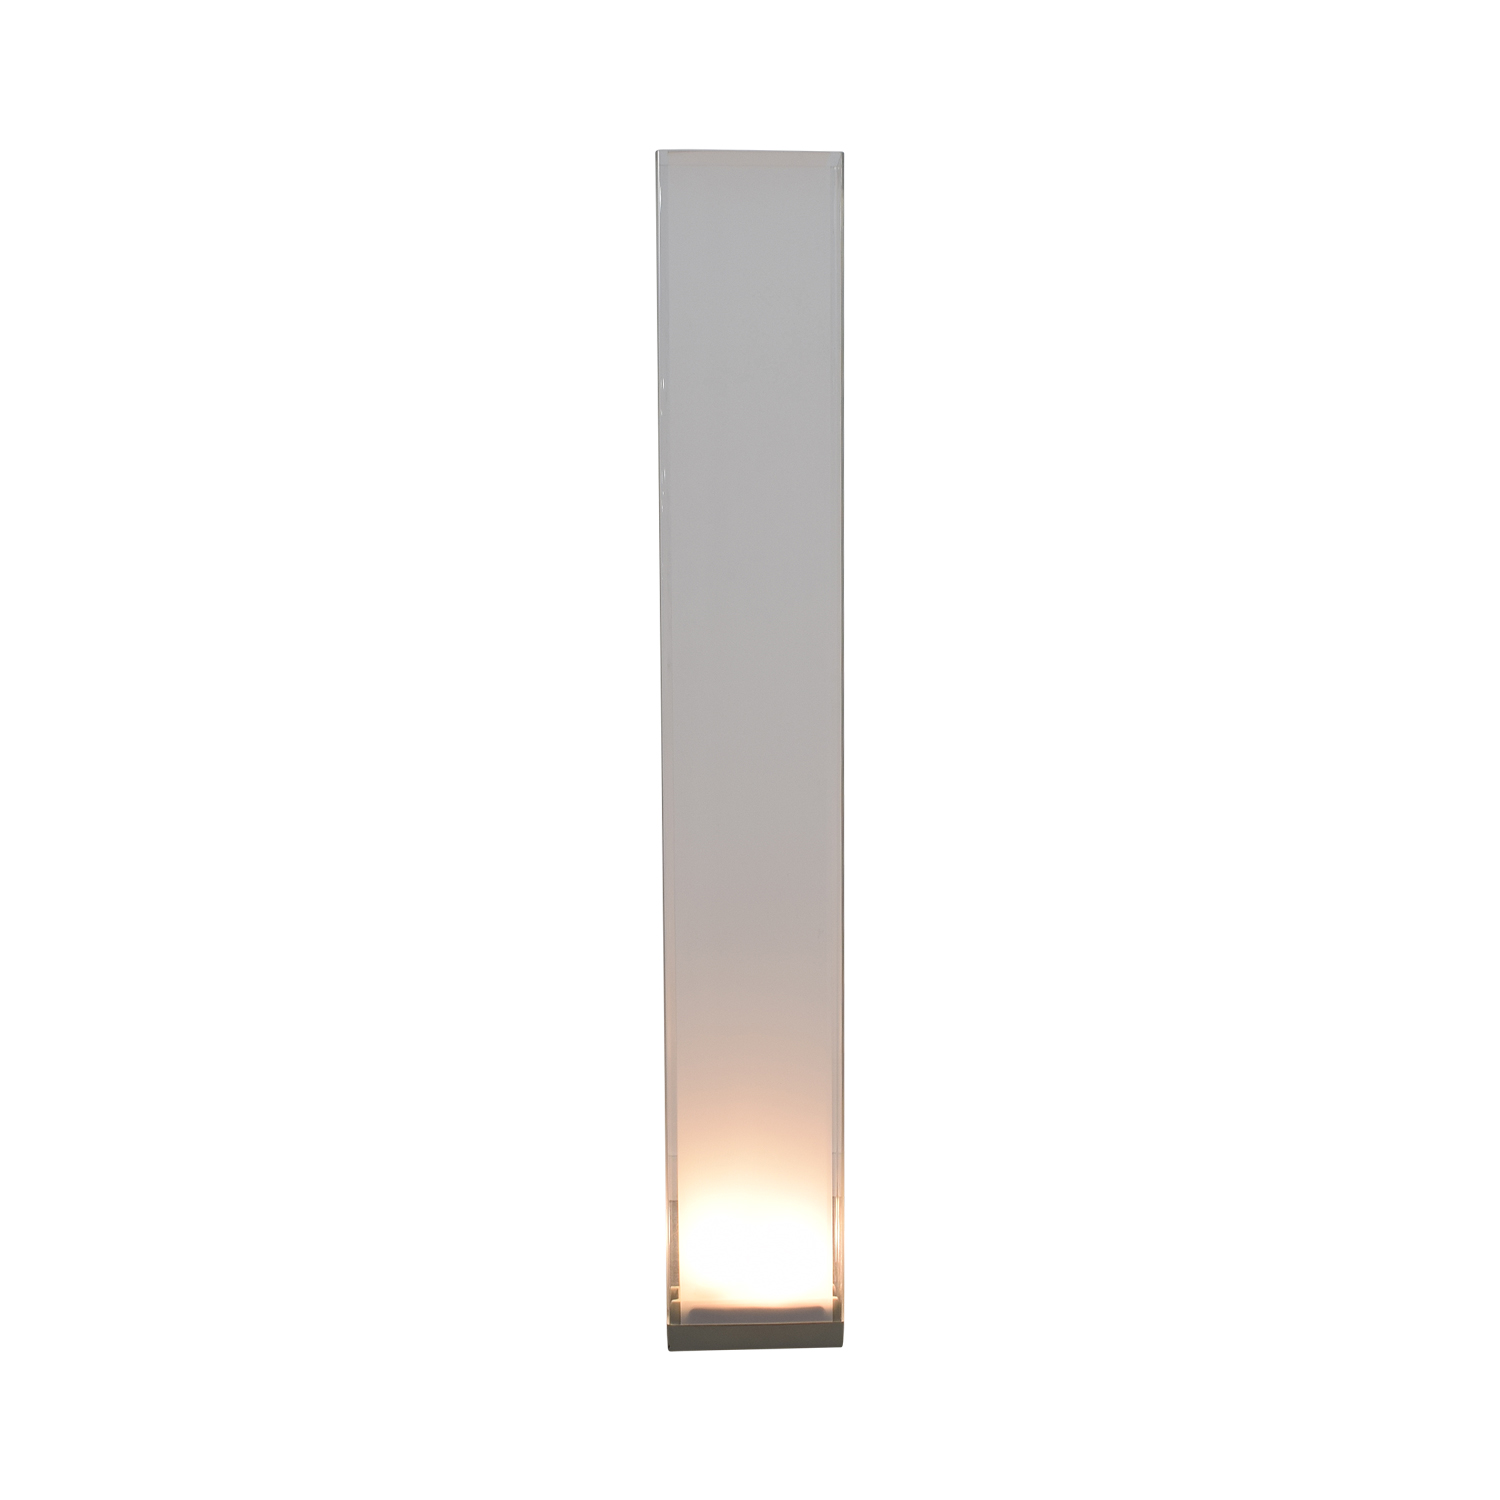 Pablo Designs Pablo Designs Floor Lamp coupon